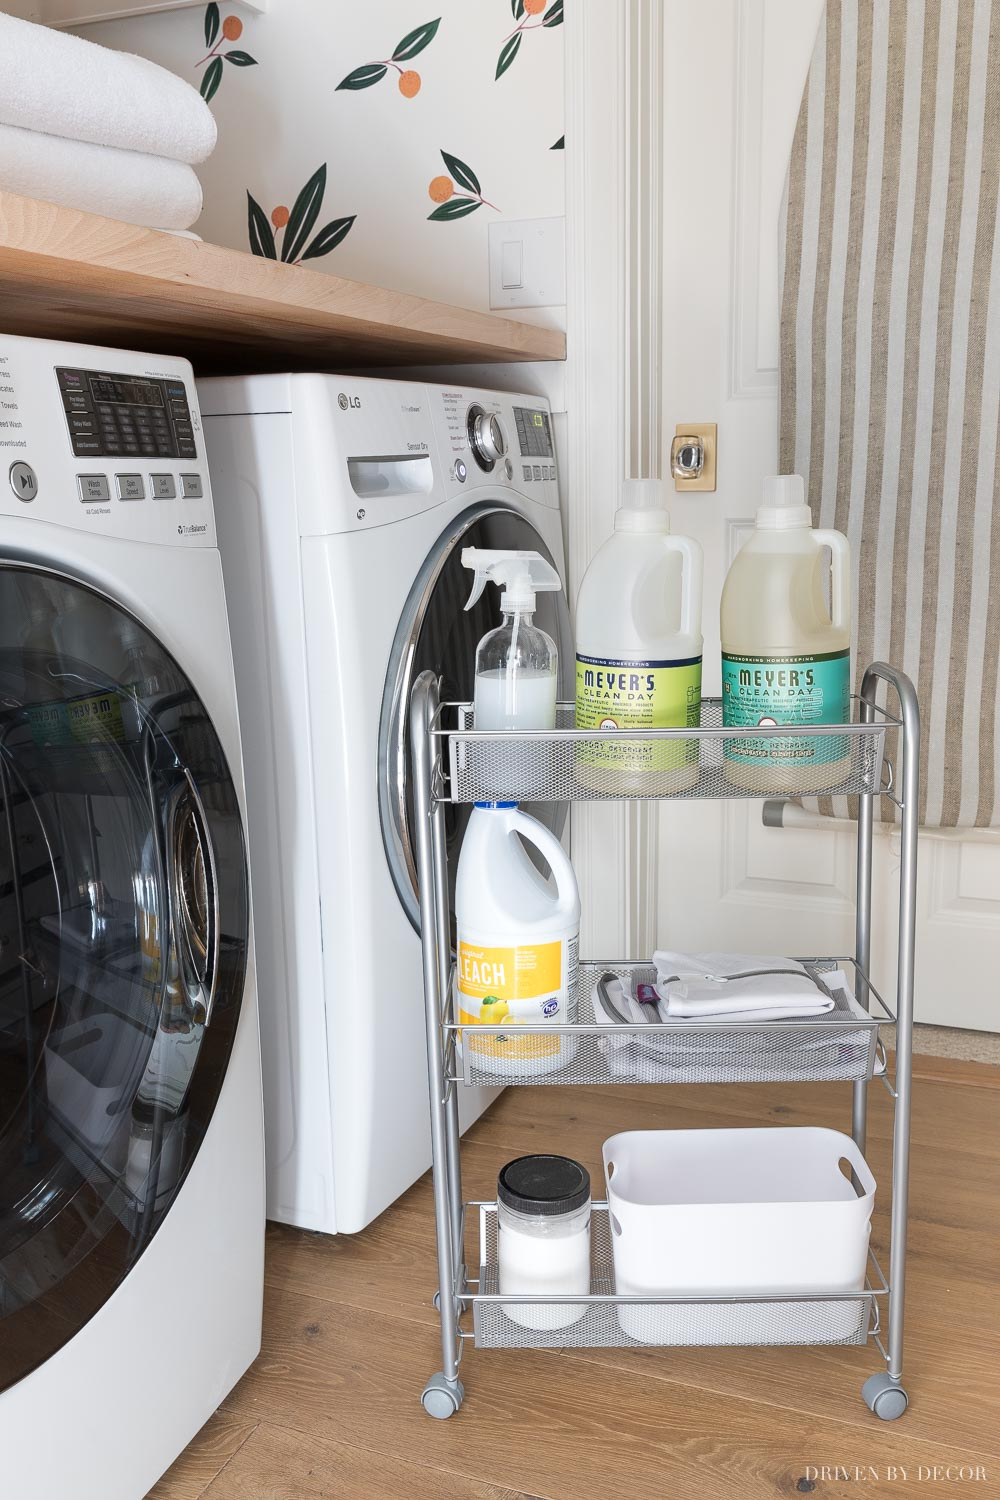 A rolling rack between your washer and dryer is a simple way to add extra storage in a small space!